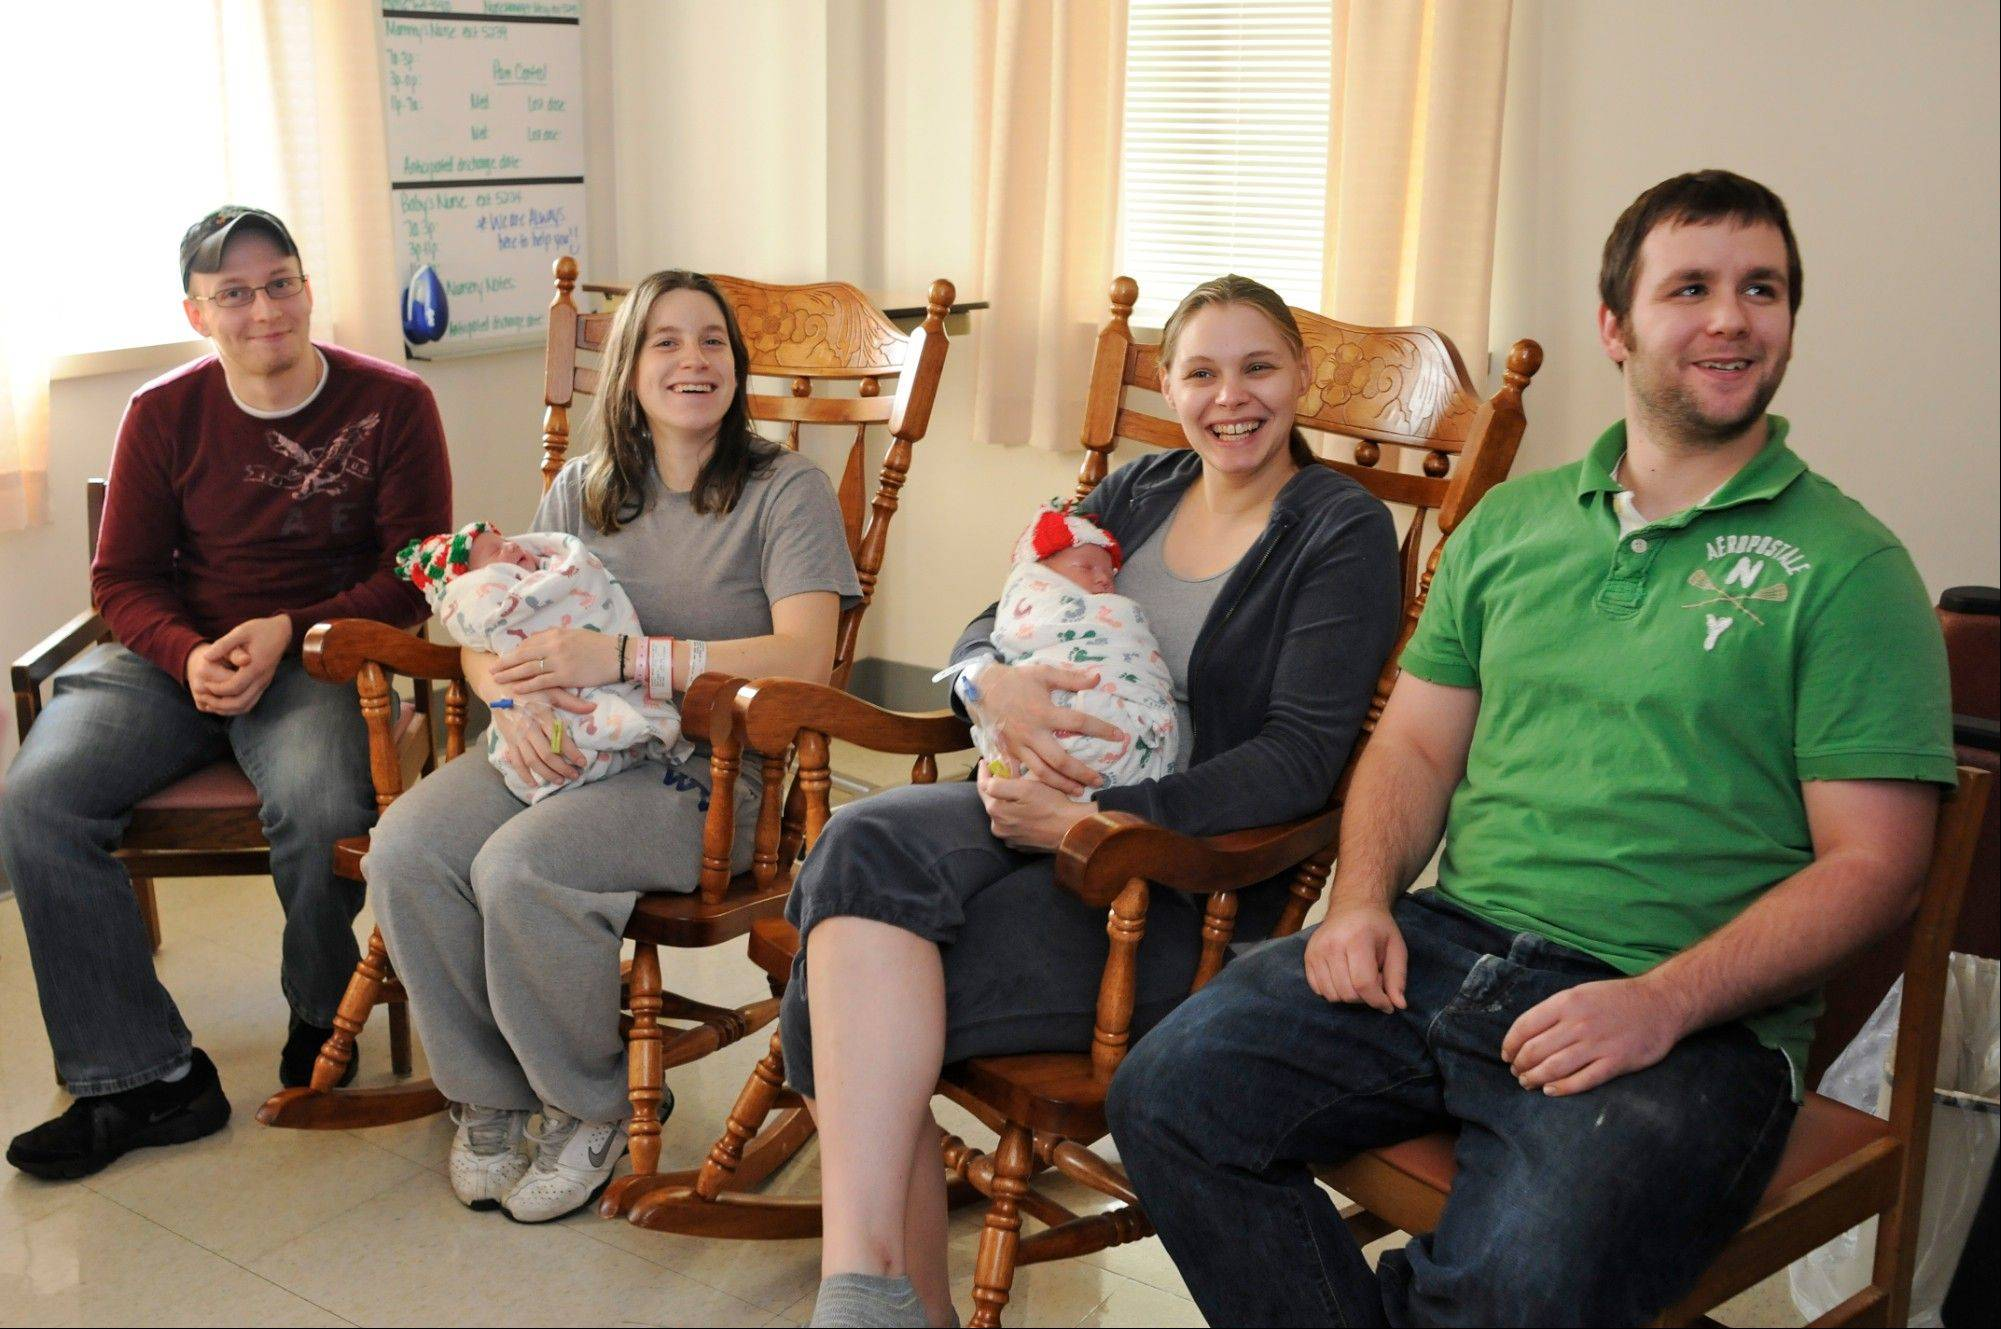 From left, Kurtis Lee King, and Ashley Morris, with daughter Ainsley, all of Williamstown, Pa., Rachel Krise, and Adam Jamison, with their son, Jet Ryan, all of Pottsville, Pa., enjoy a moment Wednesday during an interview with their newborn babies at The Birthplace Schuylkill Medical Center South Jackson Street in Pottsville, Pa.